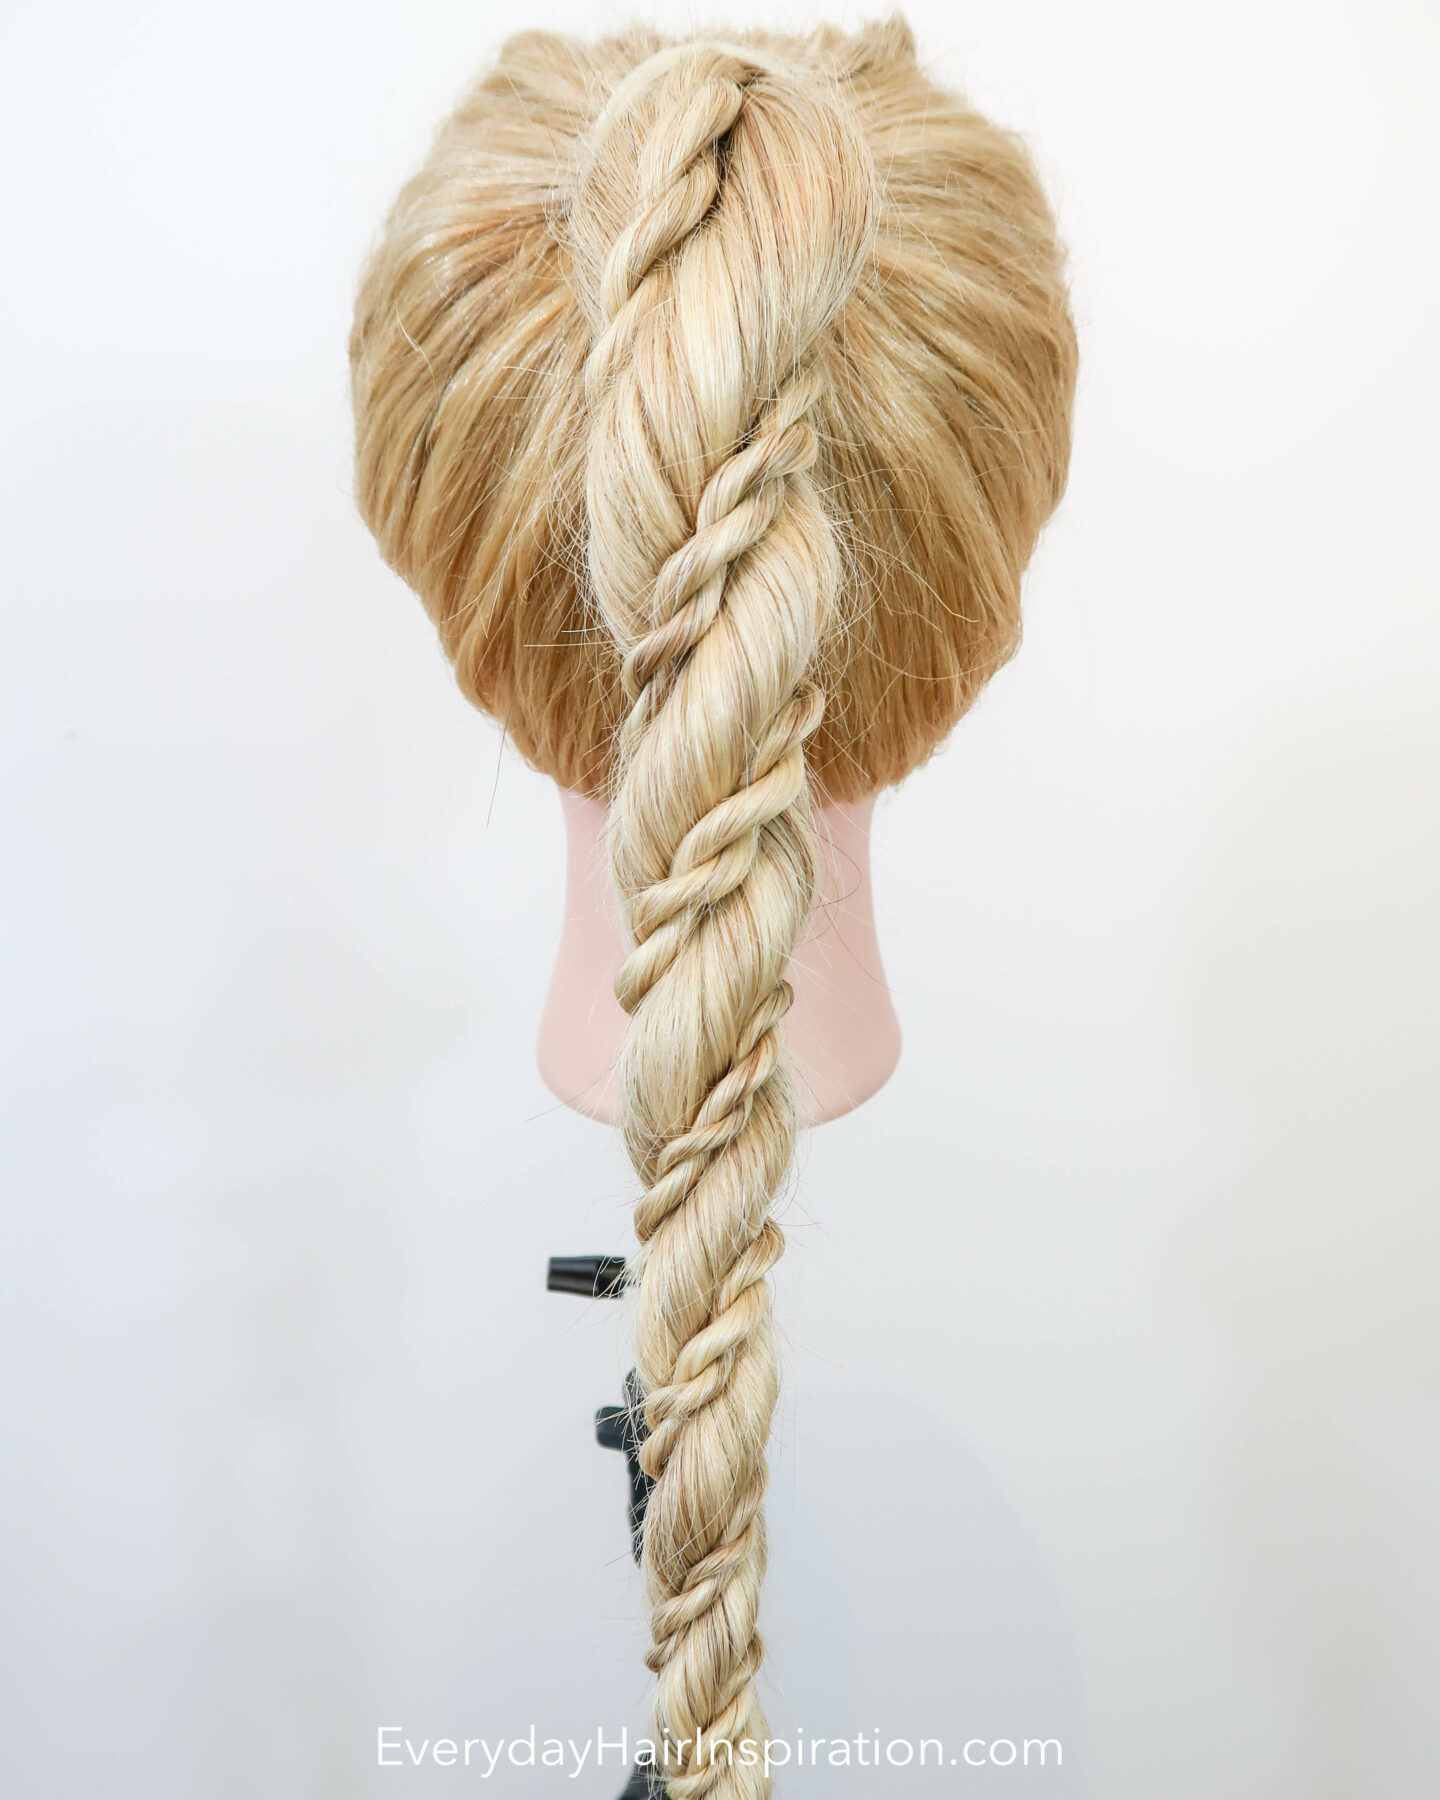 Blonde hairdresser doll seen from the back, with a high ponytail in the hair. The ponytail is a rope braid, with 2 small rope braids wrapped around the big rope braid.